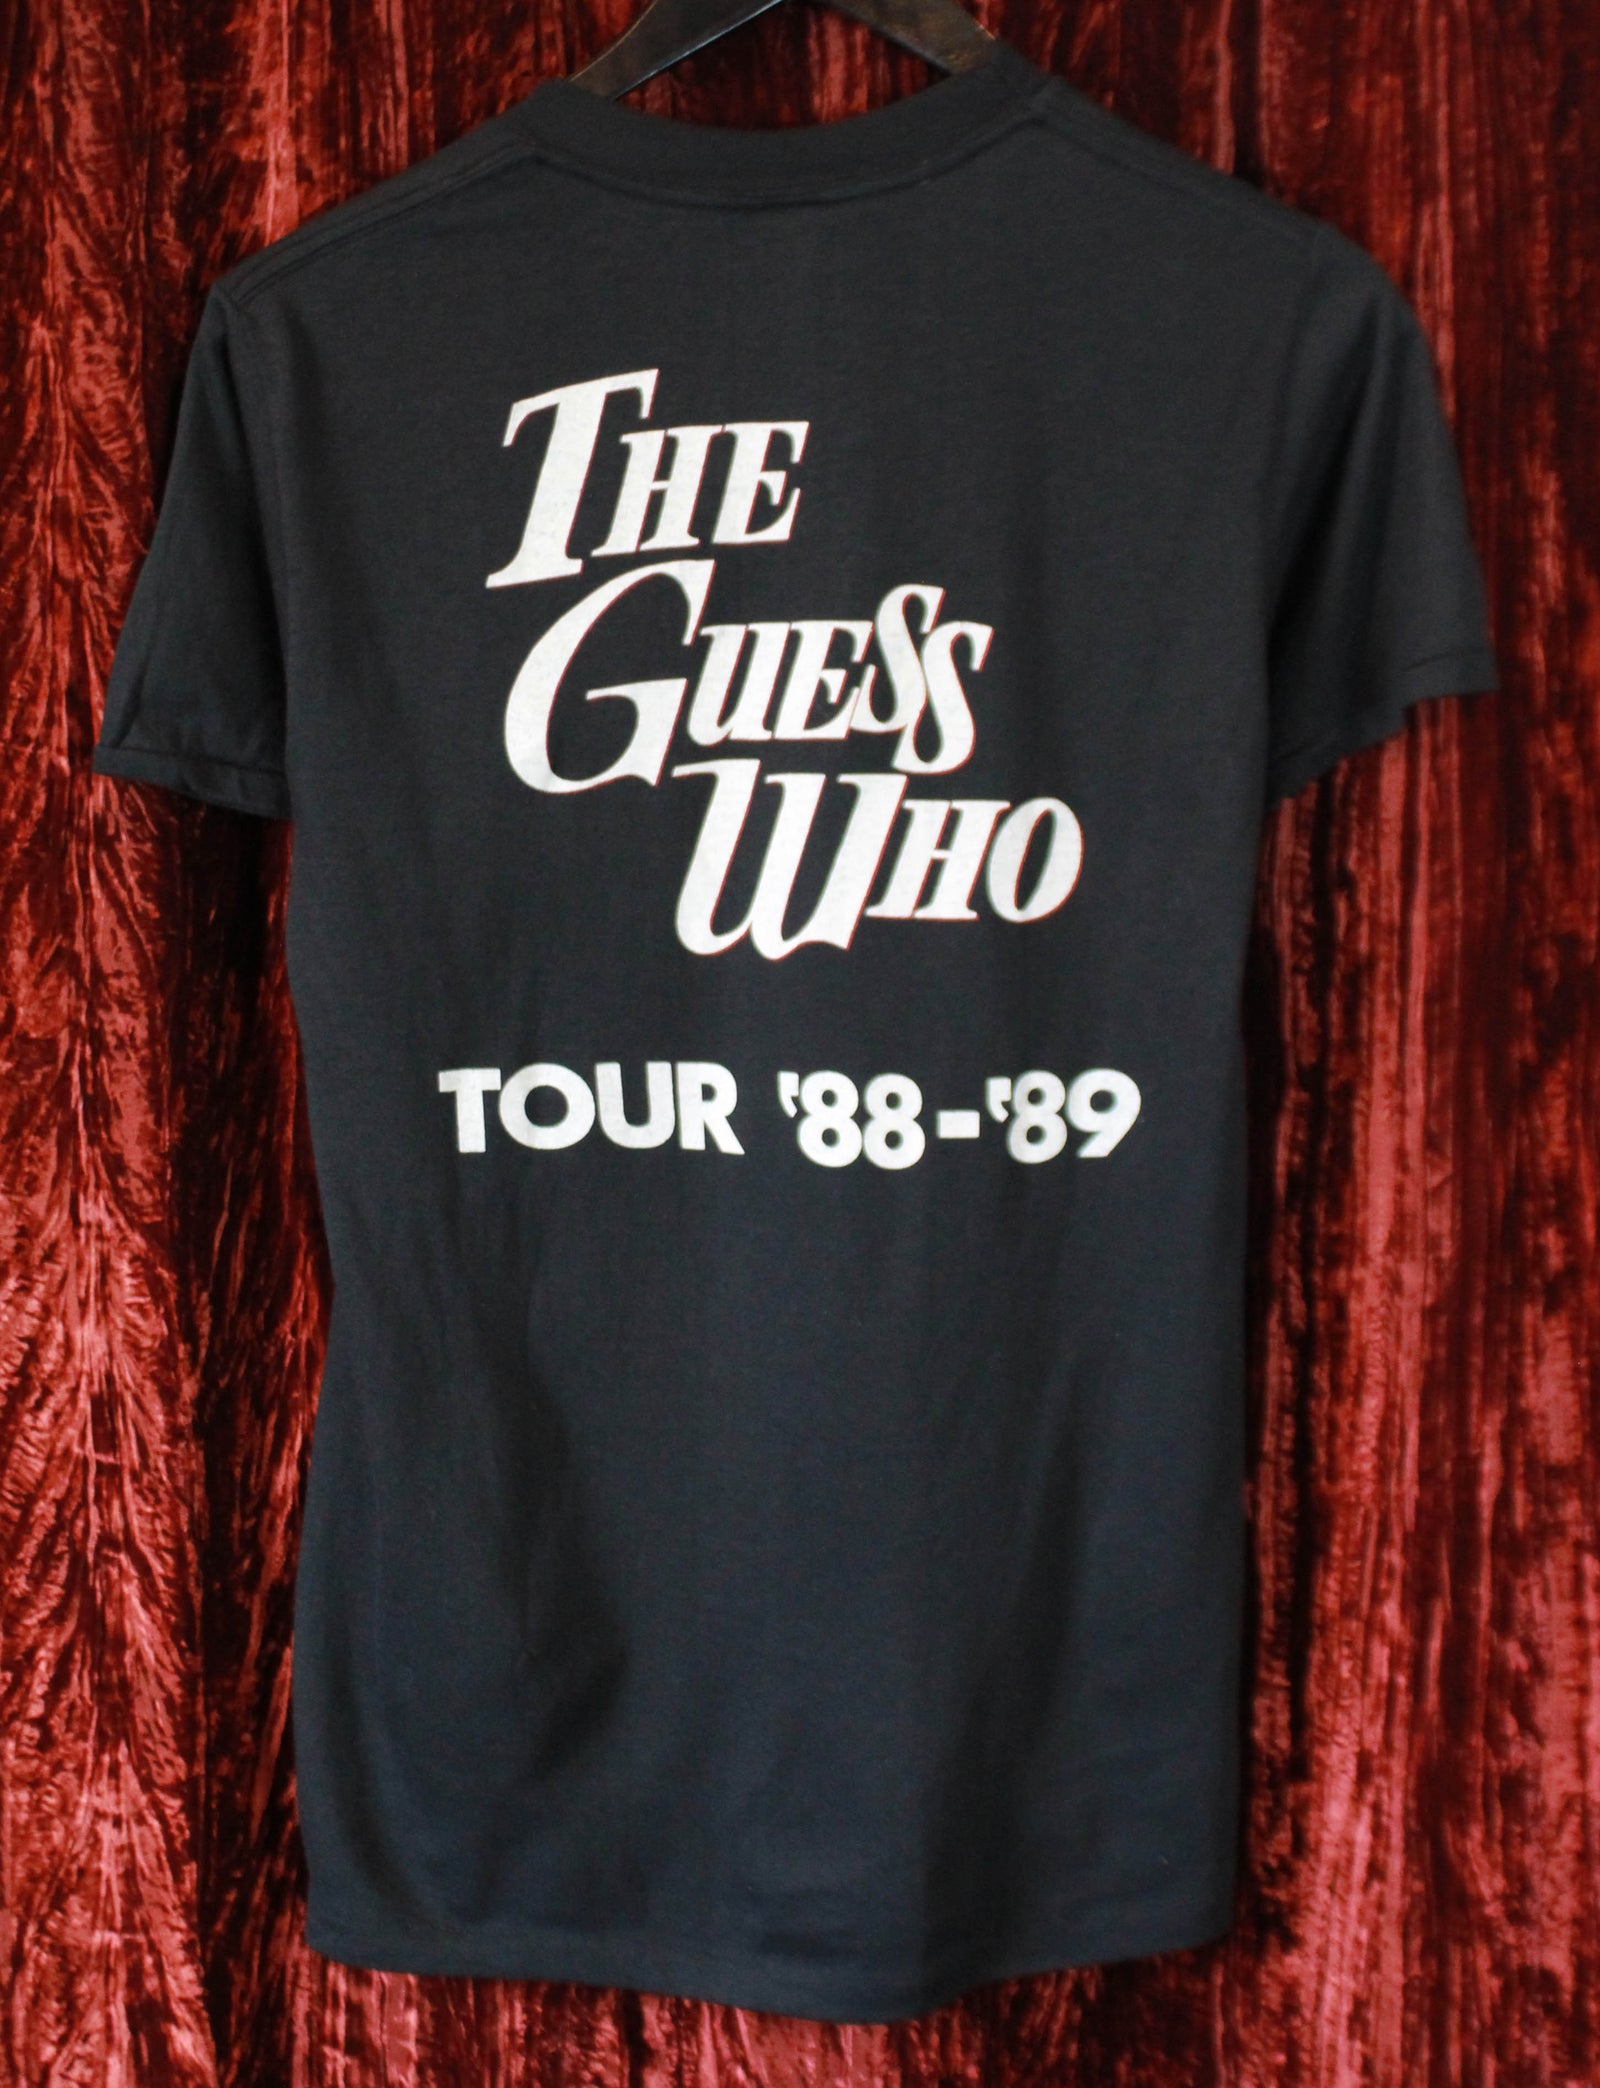 Vintage The Guess Who Concert T Shirt 1988-89 Tour Unisex Medium